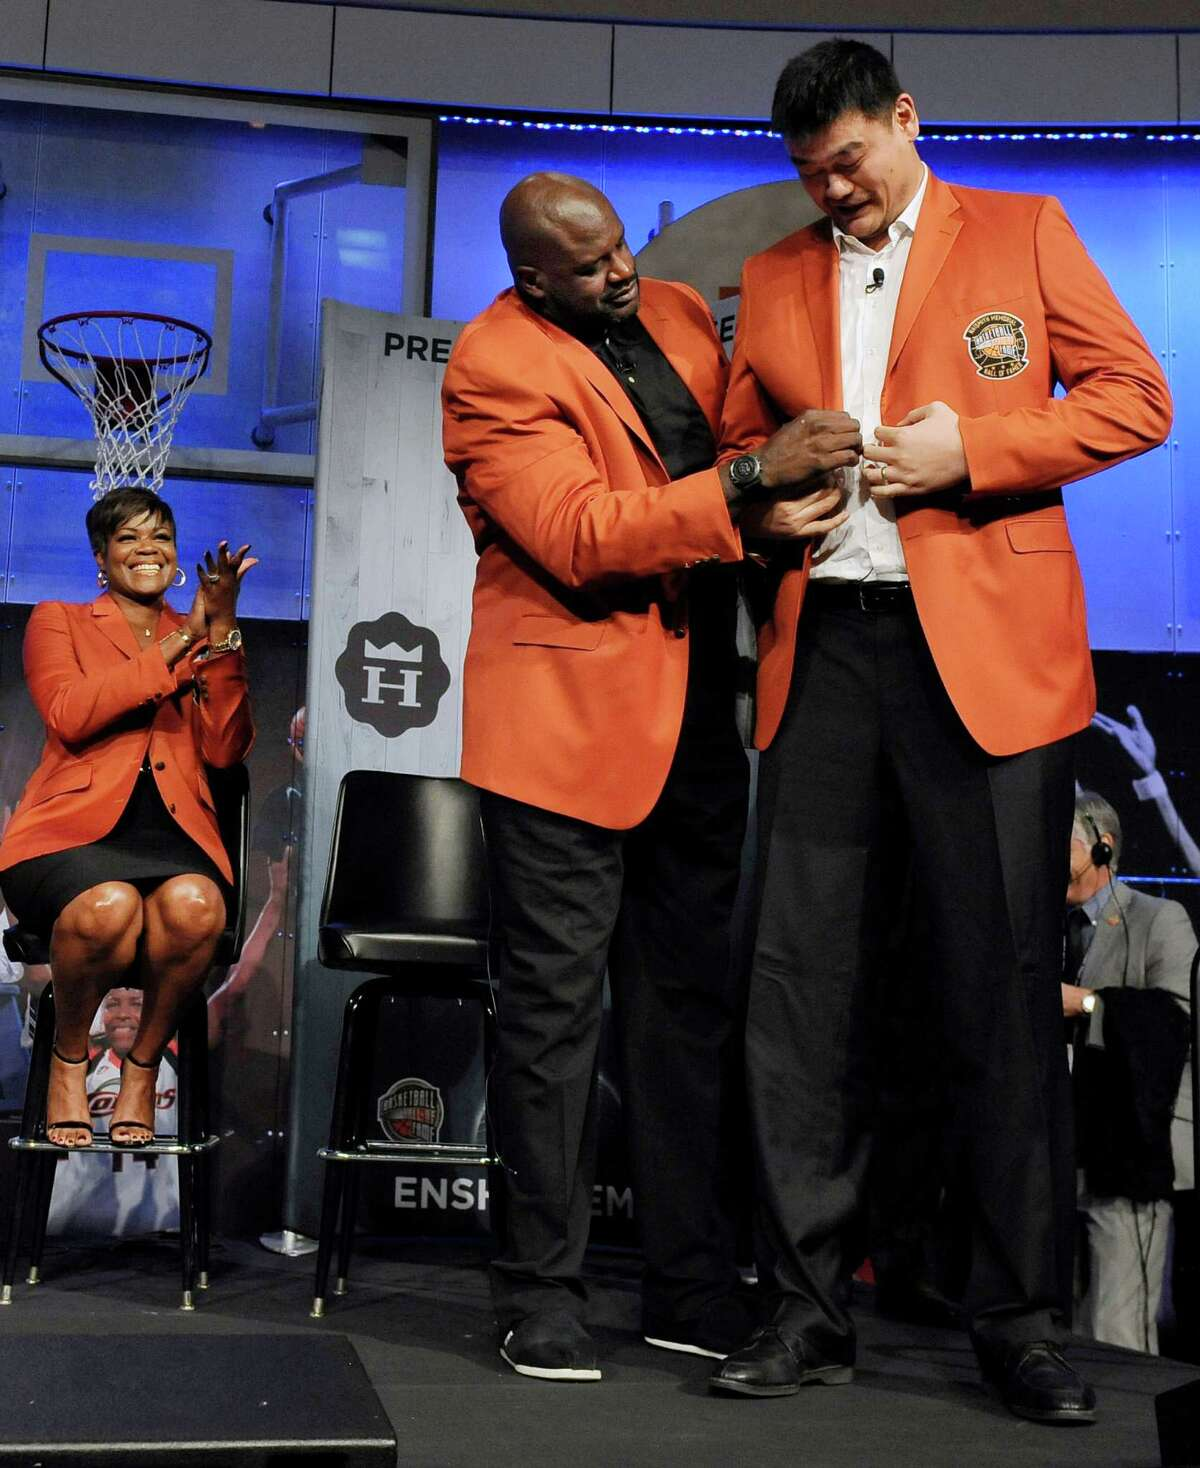 2016 class of inductees into the Basketball Hall of Fame Shaquille O'Neal, left, helps Yao Ming, right, of China, with his jacket during a news conference at the Naismith Memorial Basketball Hall of Fame, Thursday, Sept. 8, 2016, in Springfield, Mass. (AP Photo/Jessica Hill)